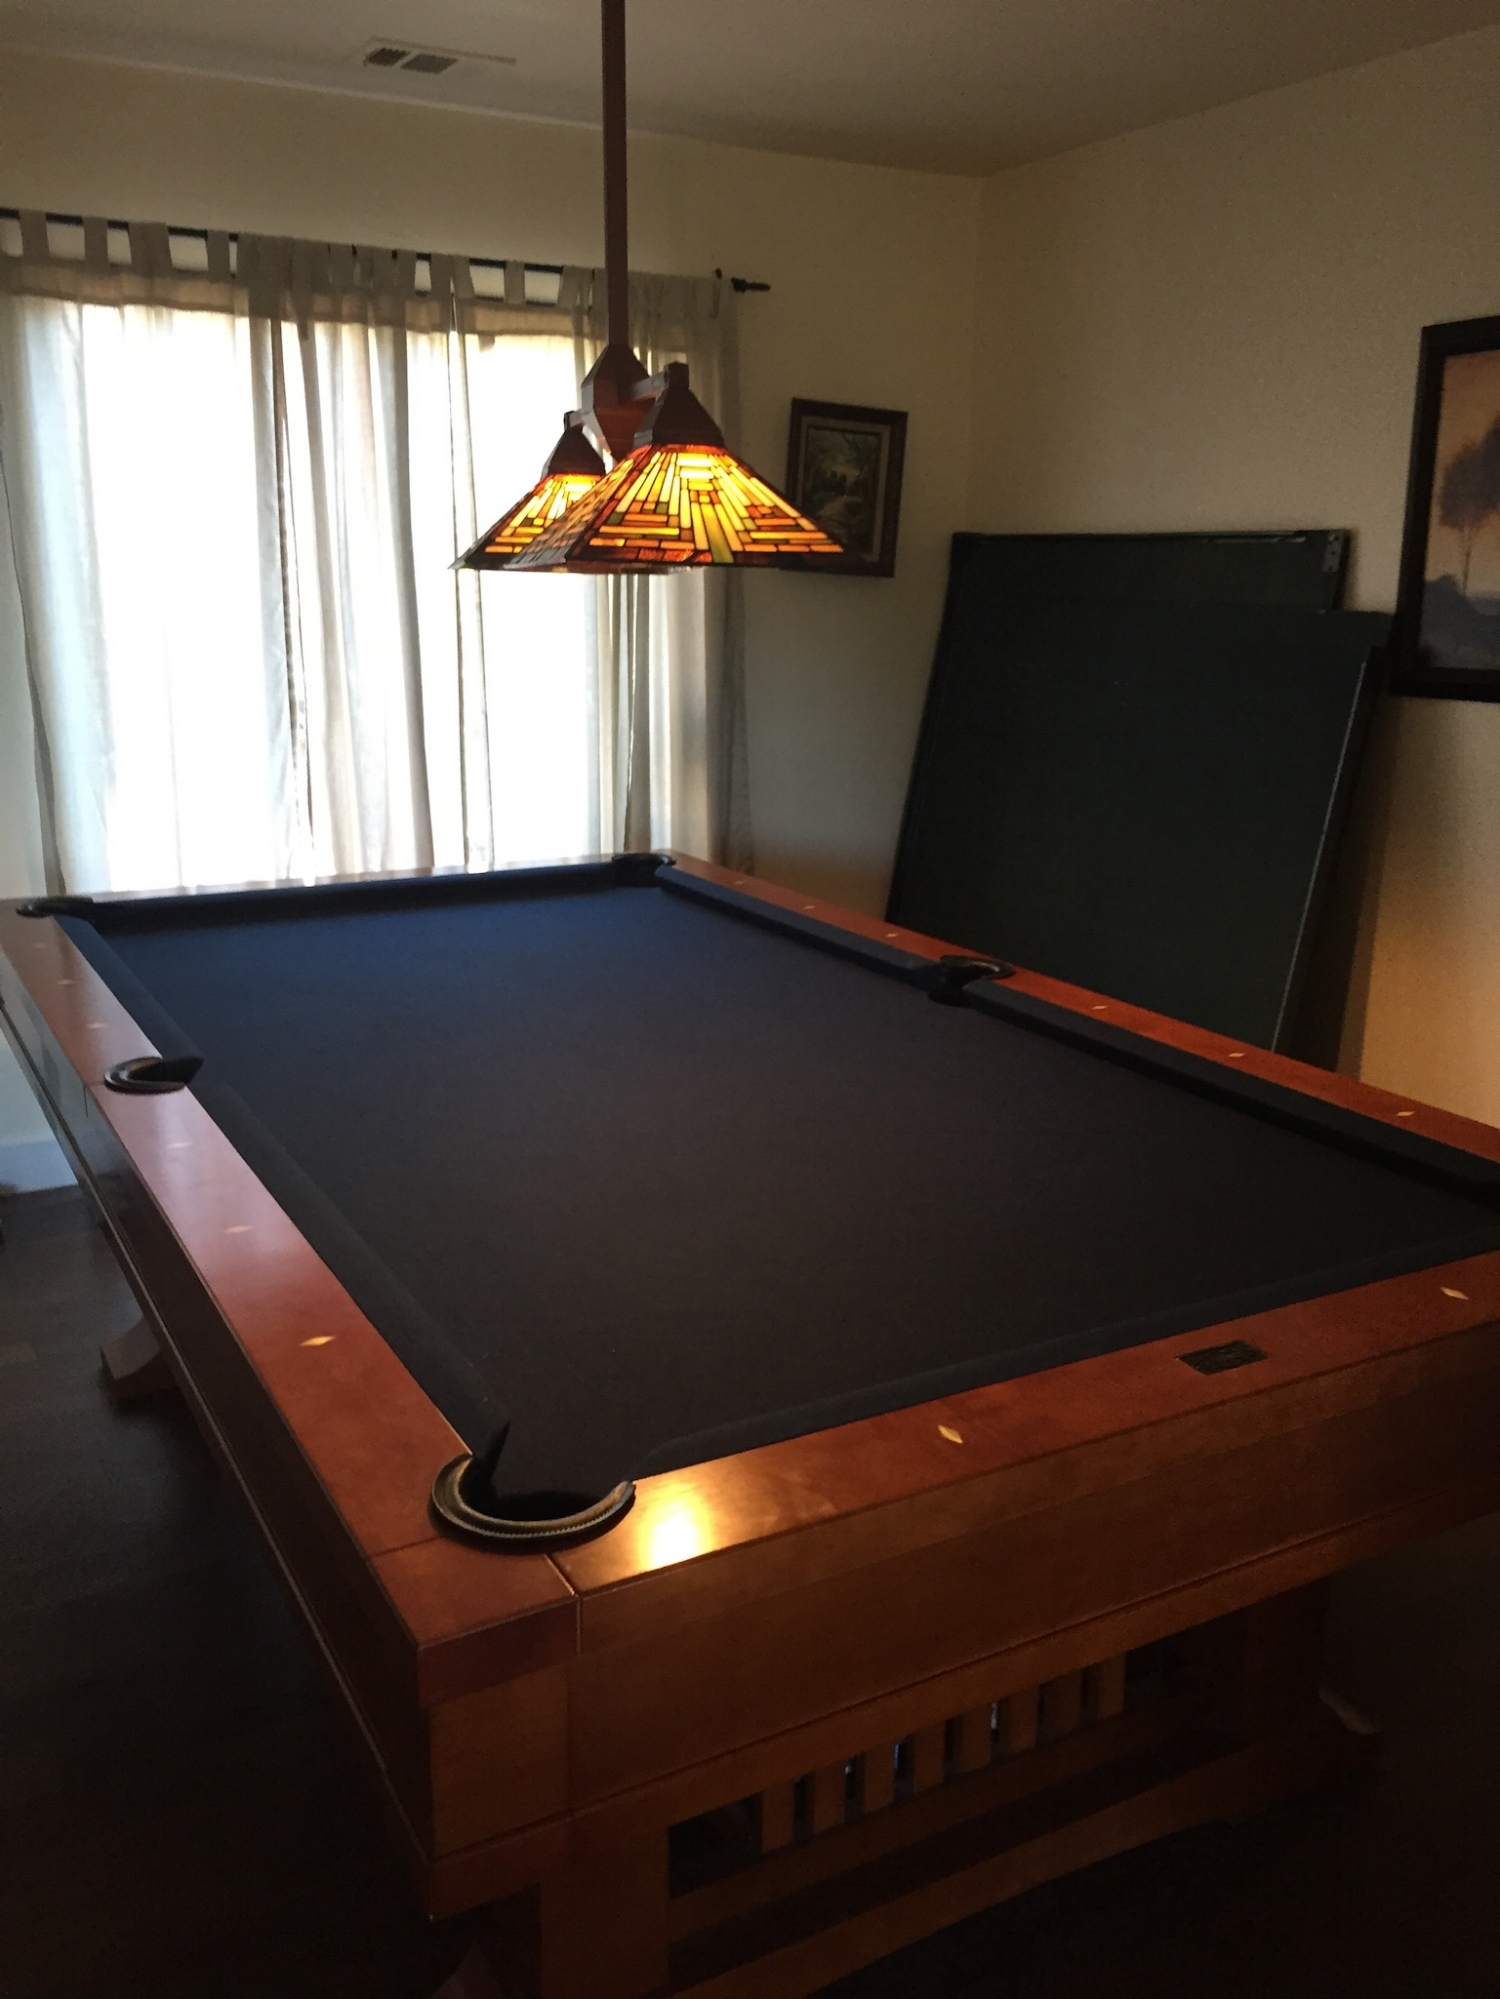 pool and ping pong table, multitudes of board games